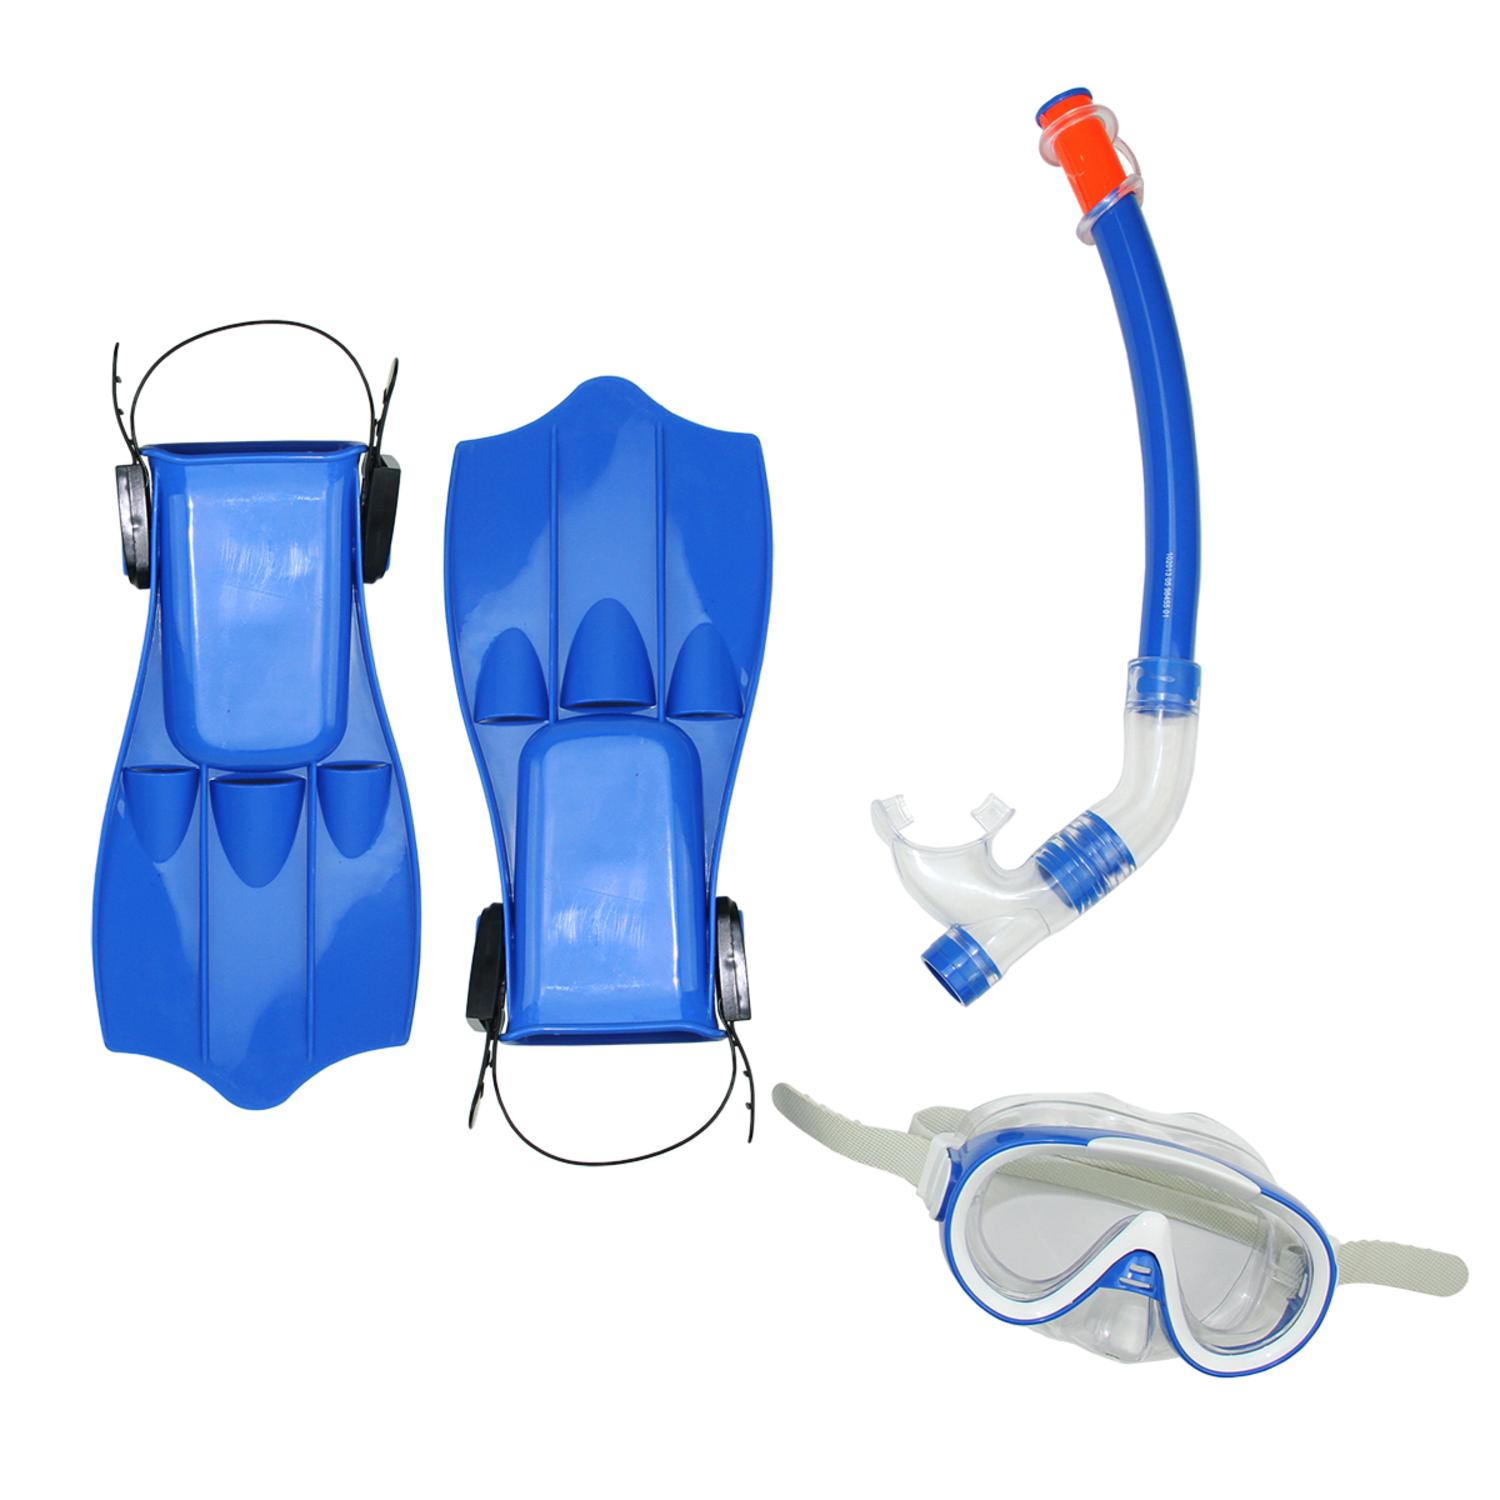 Blue Caribbean Junior Water or Swimming Pool Scuba or Snorkeling Set Medium by Swim Central